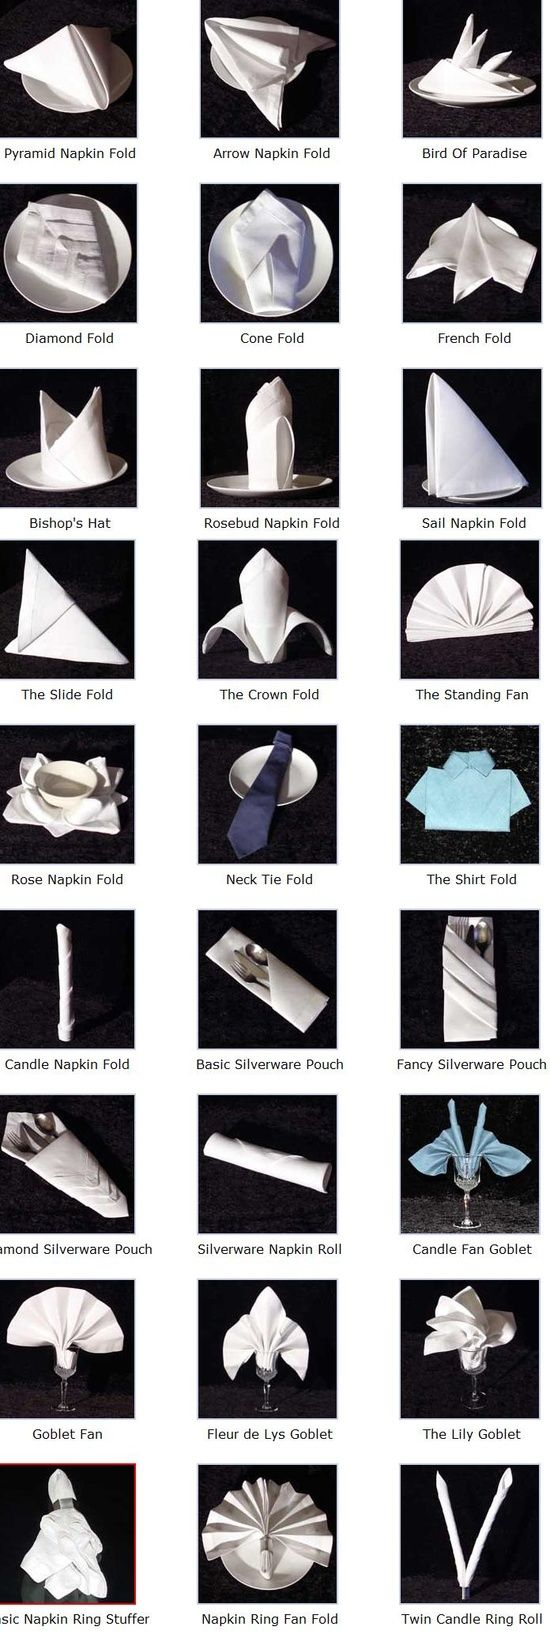 fold a napkin----SO COOL A CHART STEP BY STEP ON NAPKIN DESIGN FOLDING